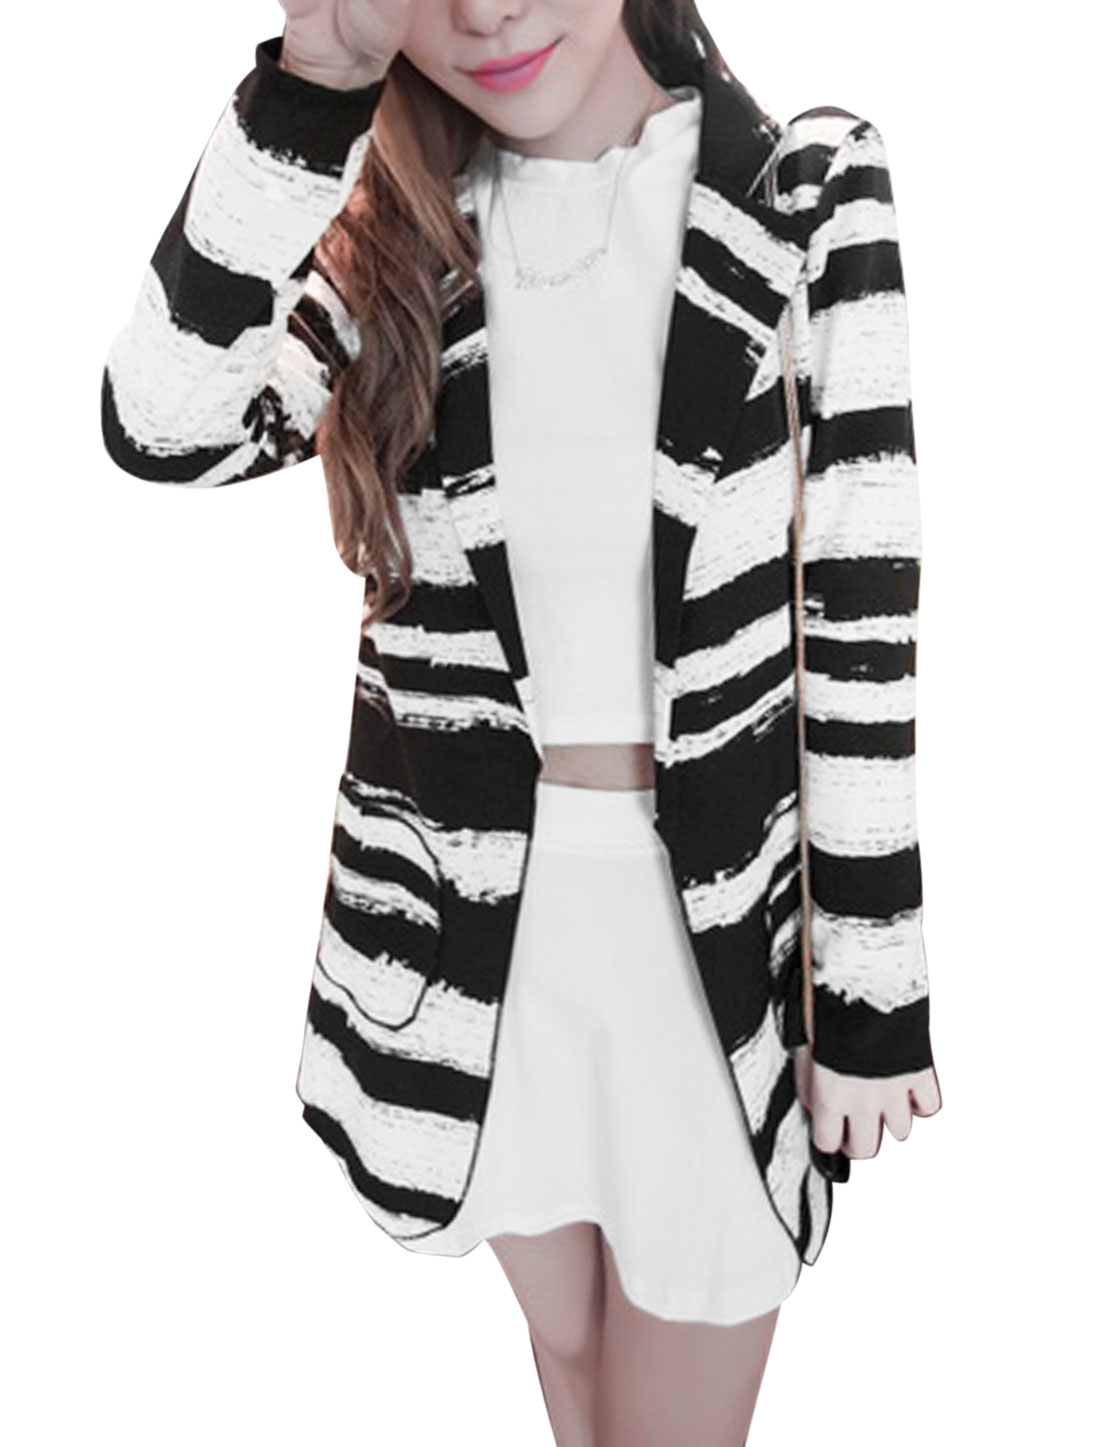 Ladies Black White Long Sleeves Notched Lapel Front Opening Stripes Blazer Jacket XS